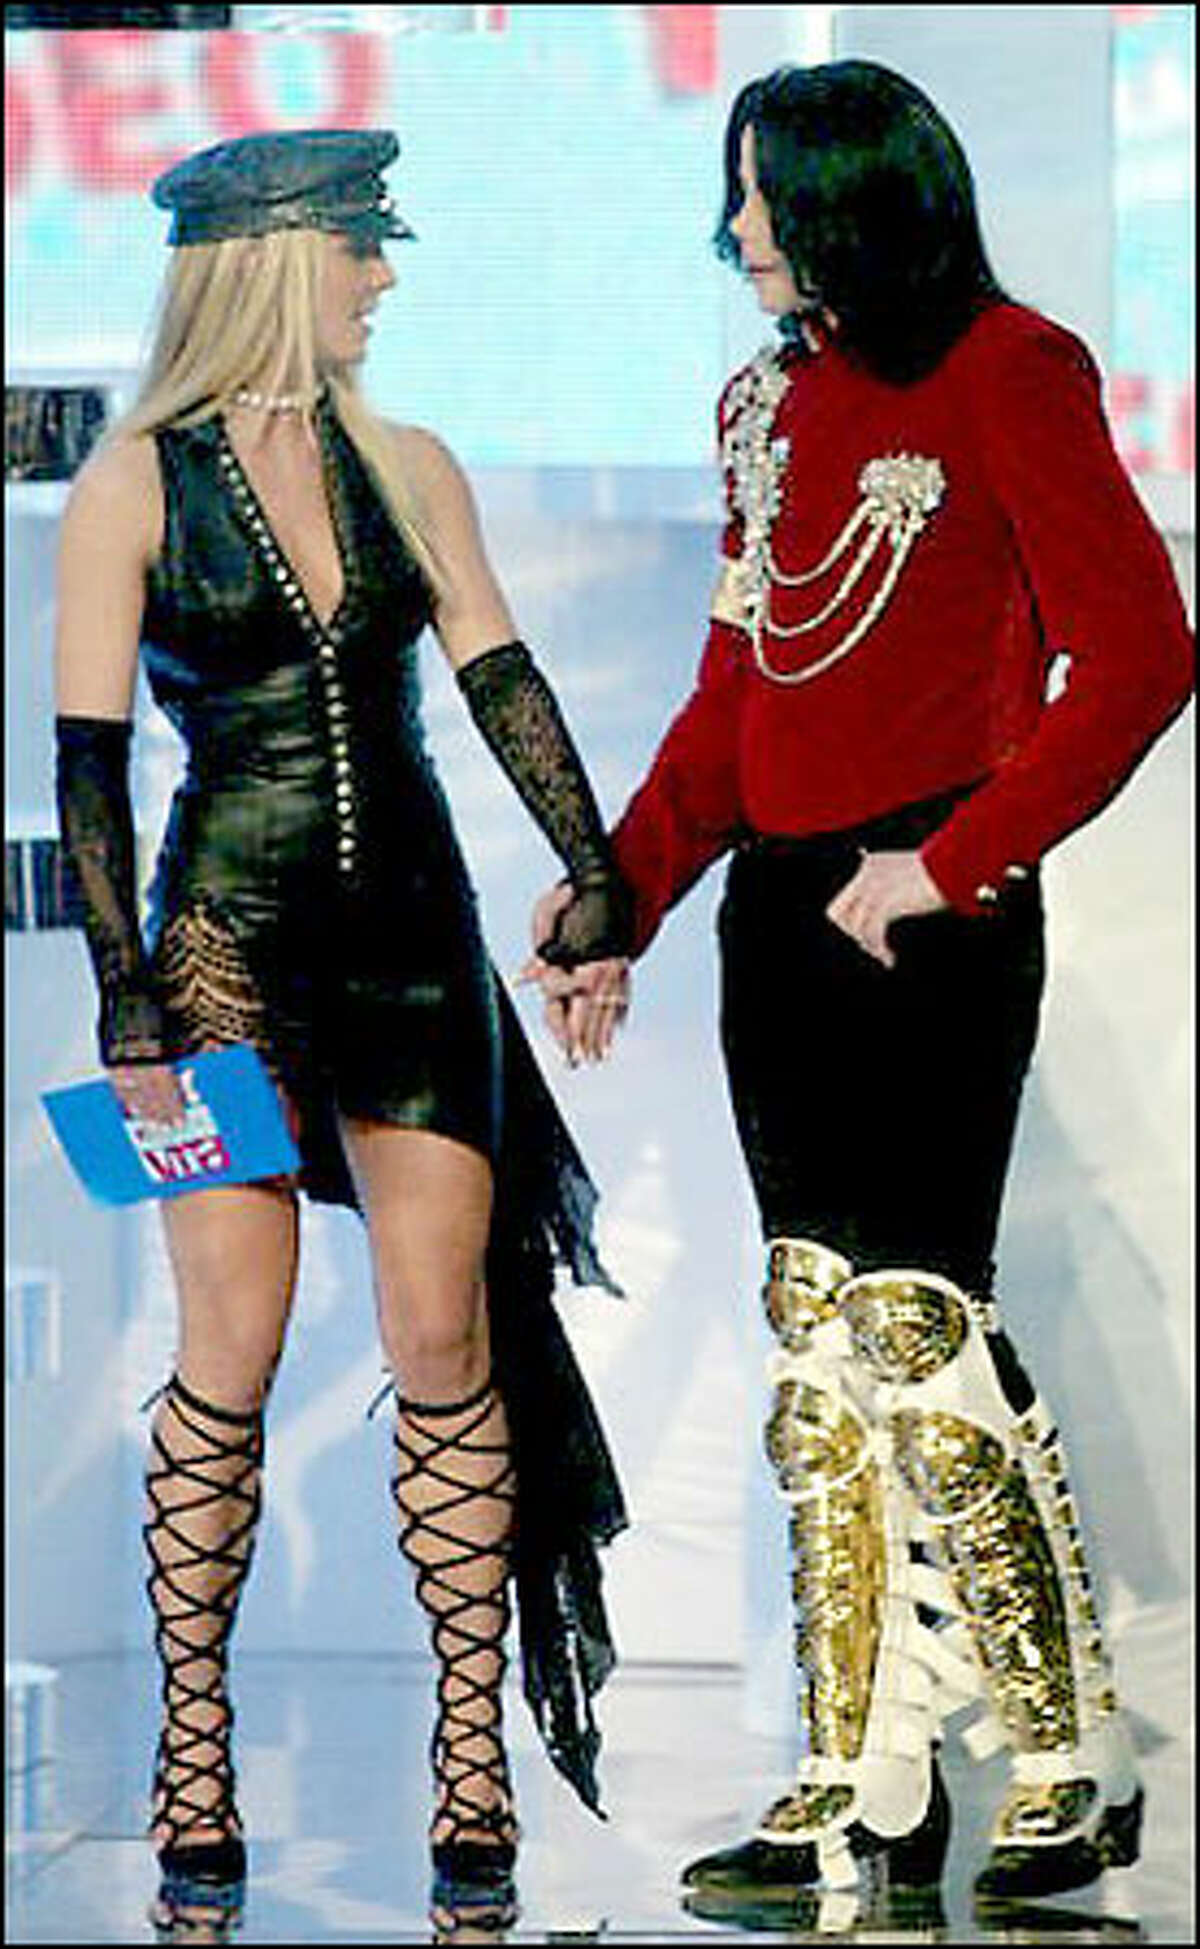 Michael Jackson, right, accepts a special birthday gift from Britney Spears to celebrate his 44th birthday.